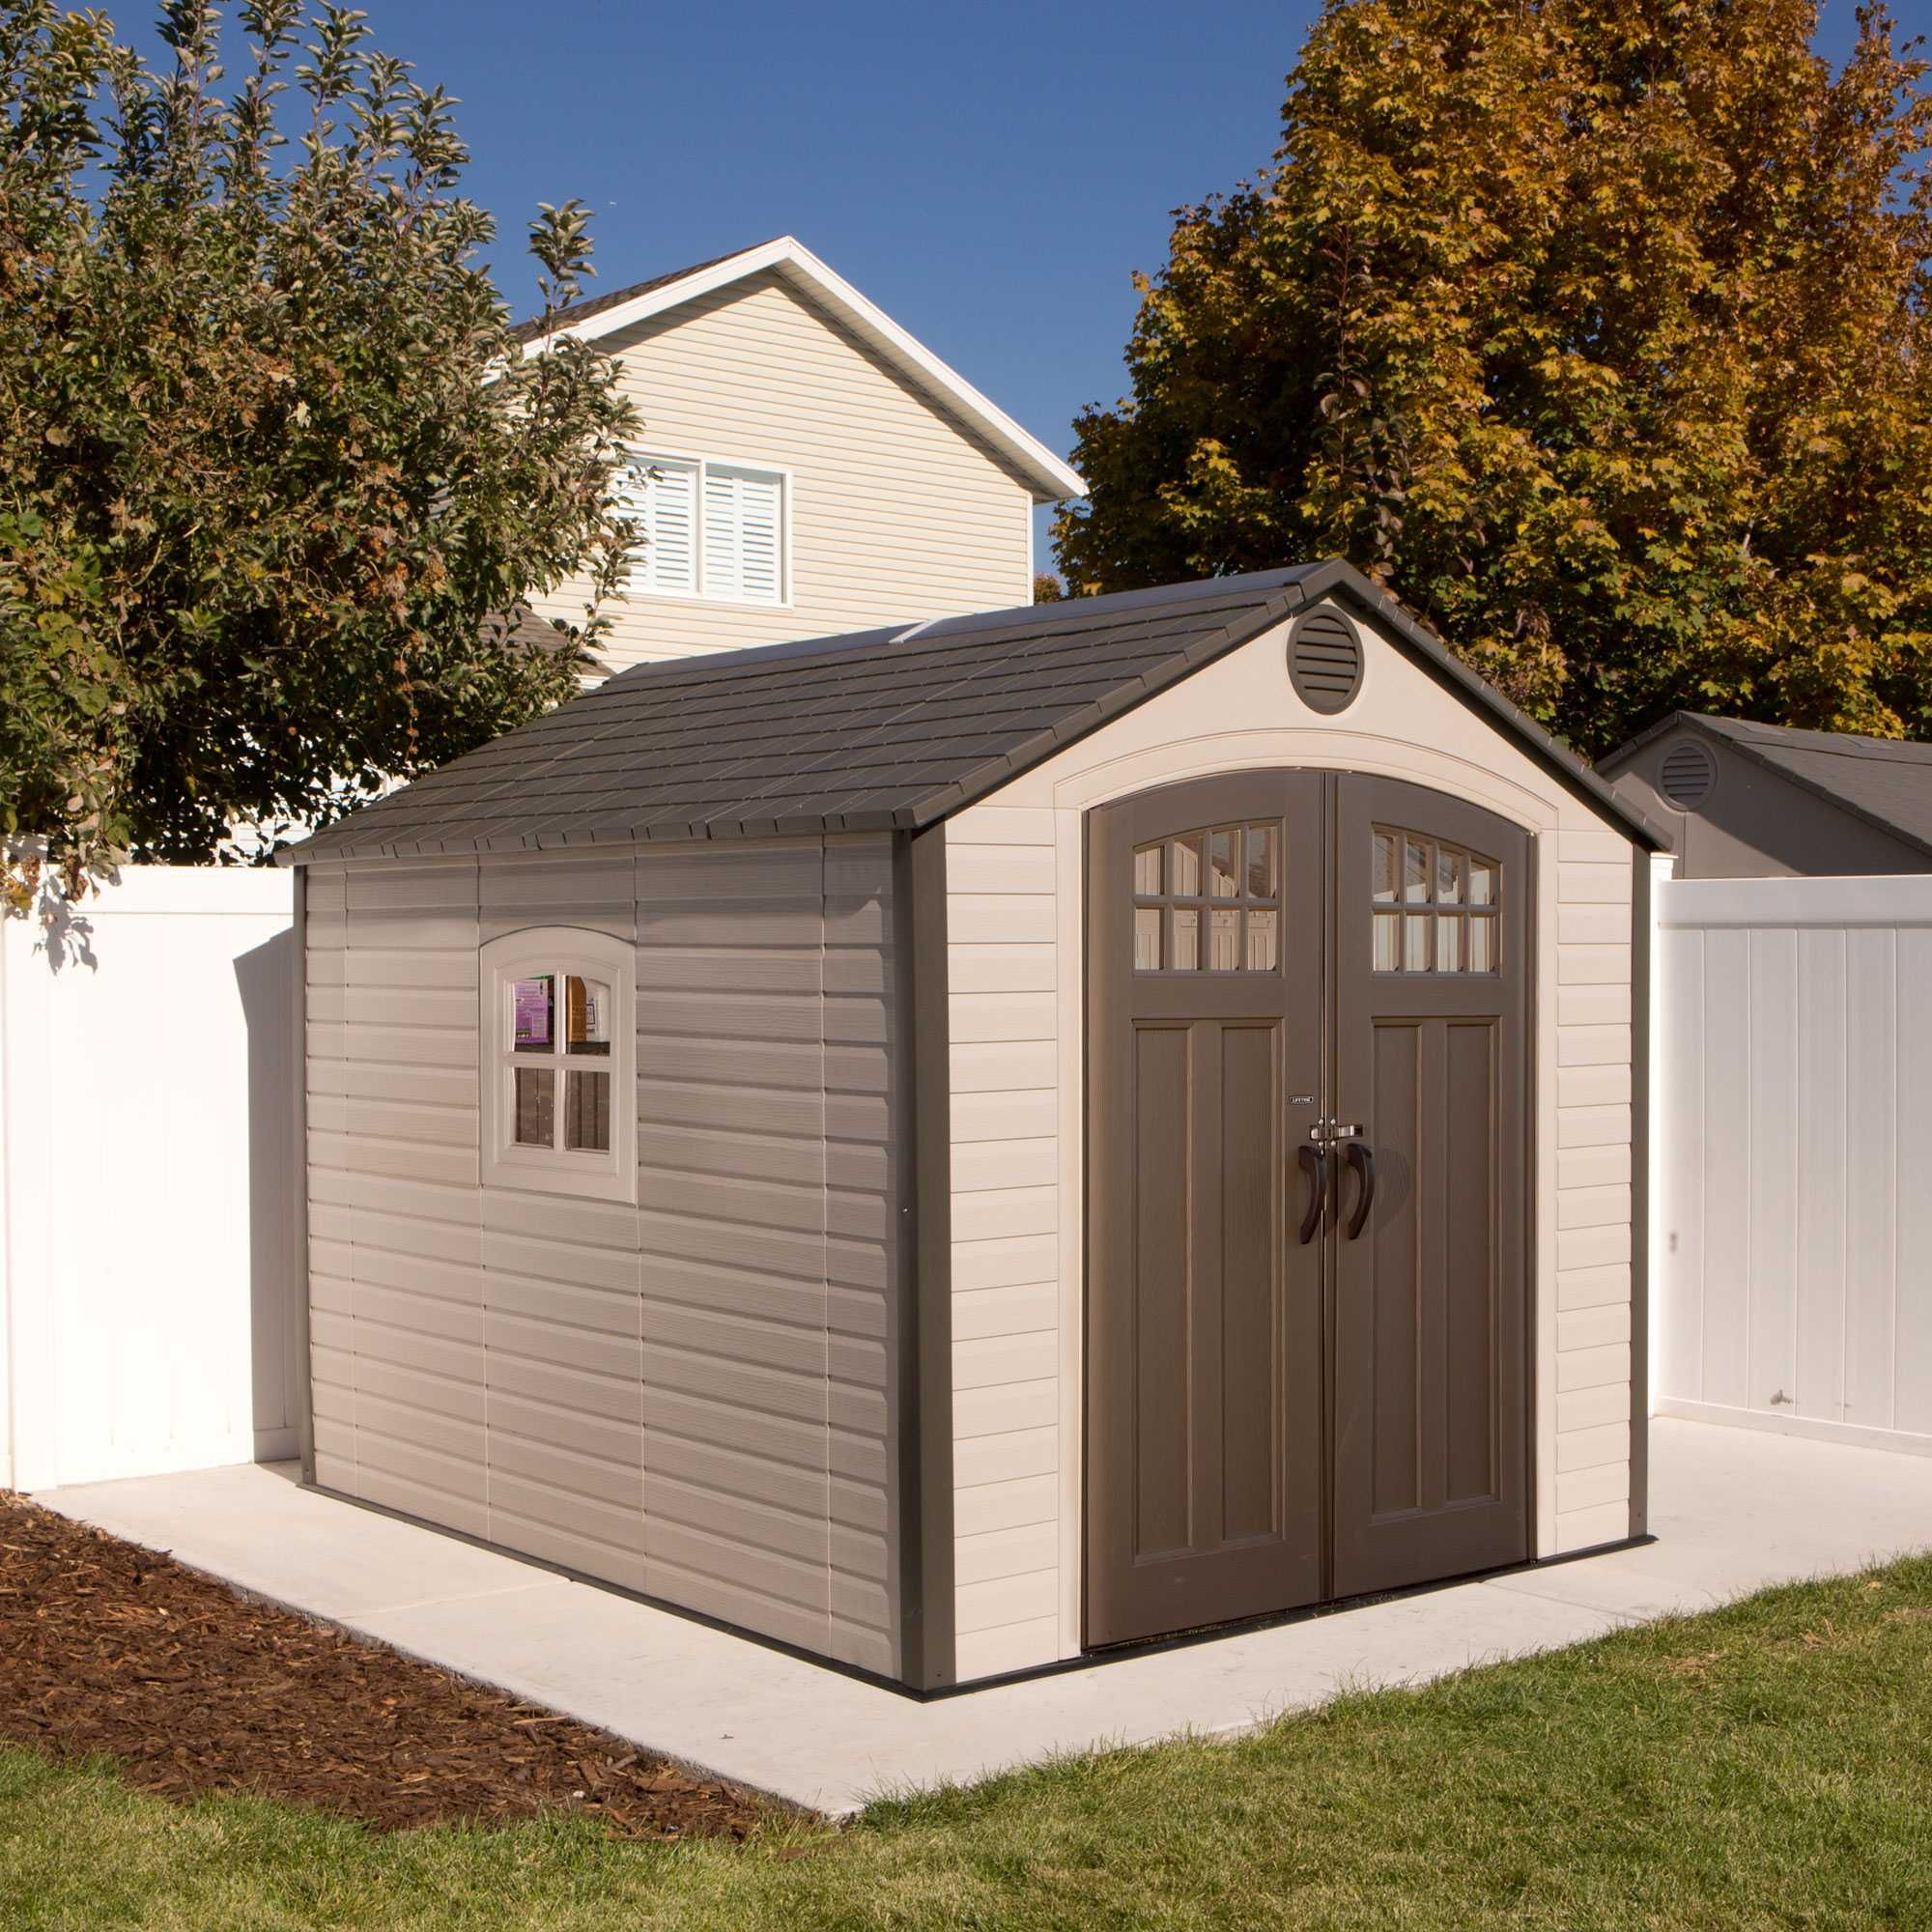 the lifetime 8 x 10 outdoor storage shed features slider latch 8 pane doors 1 ridge skylight 1 shatter proof window 2 screened vents